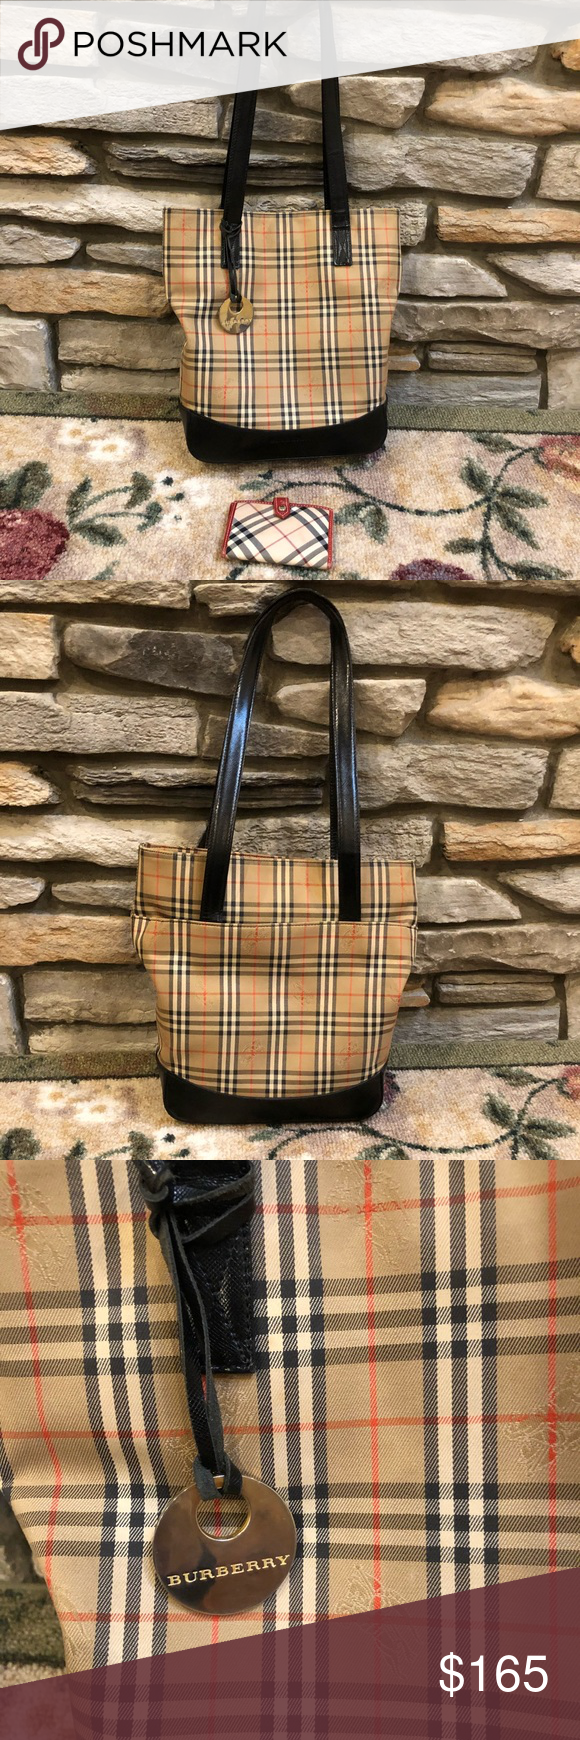 burberry tote bag blue label